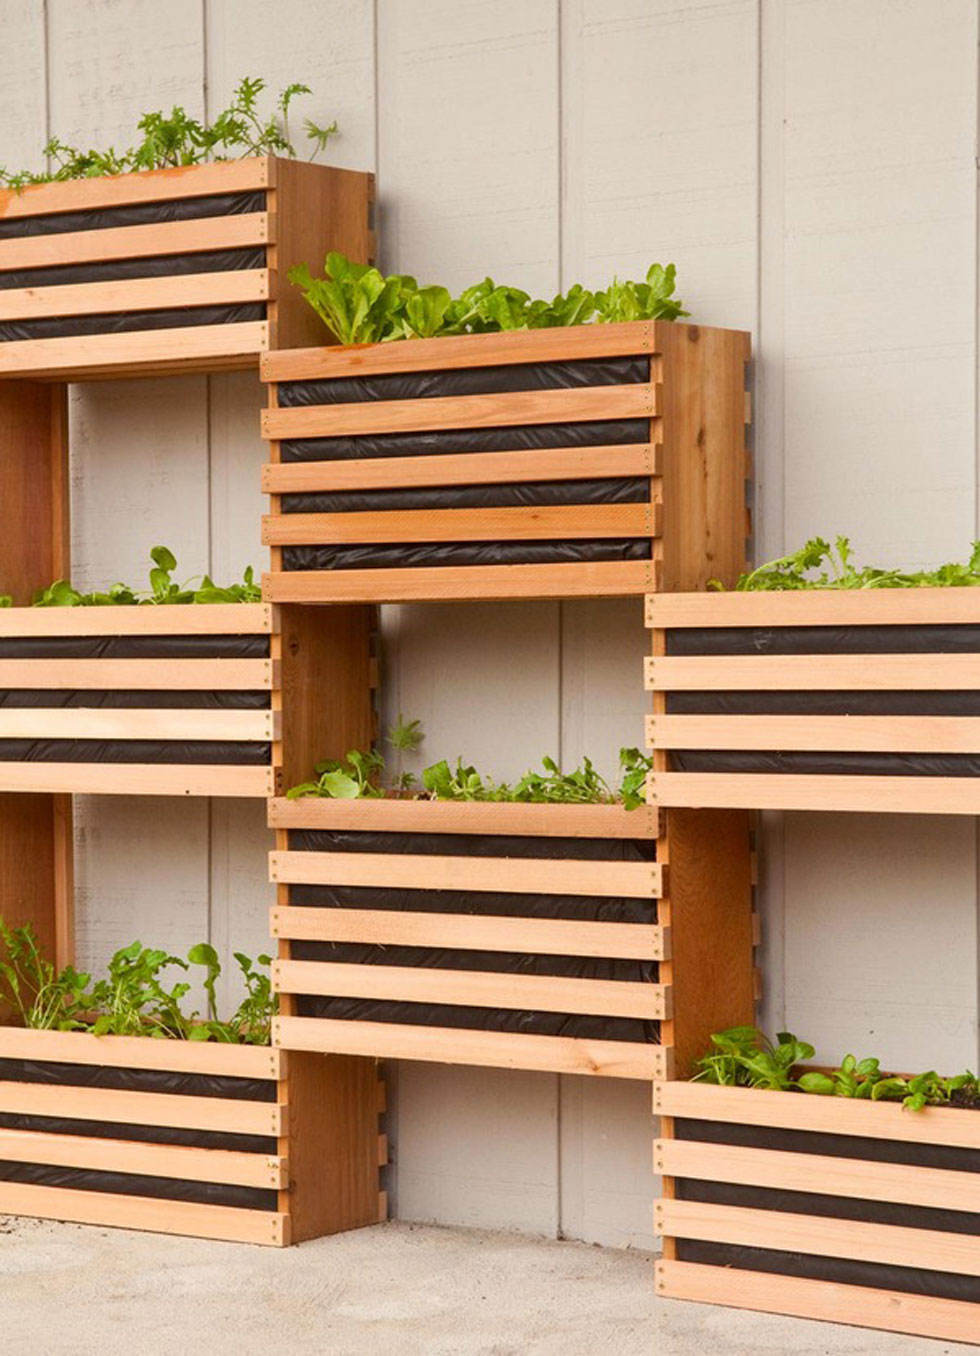 26 creative ways to plant a vertical garden how to make a vertical garden - Outdoor Wall Designs